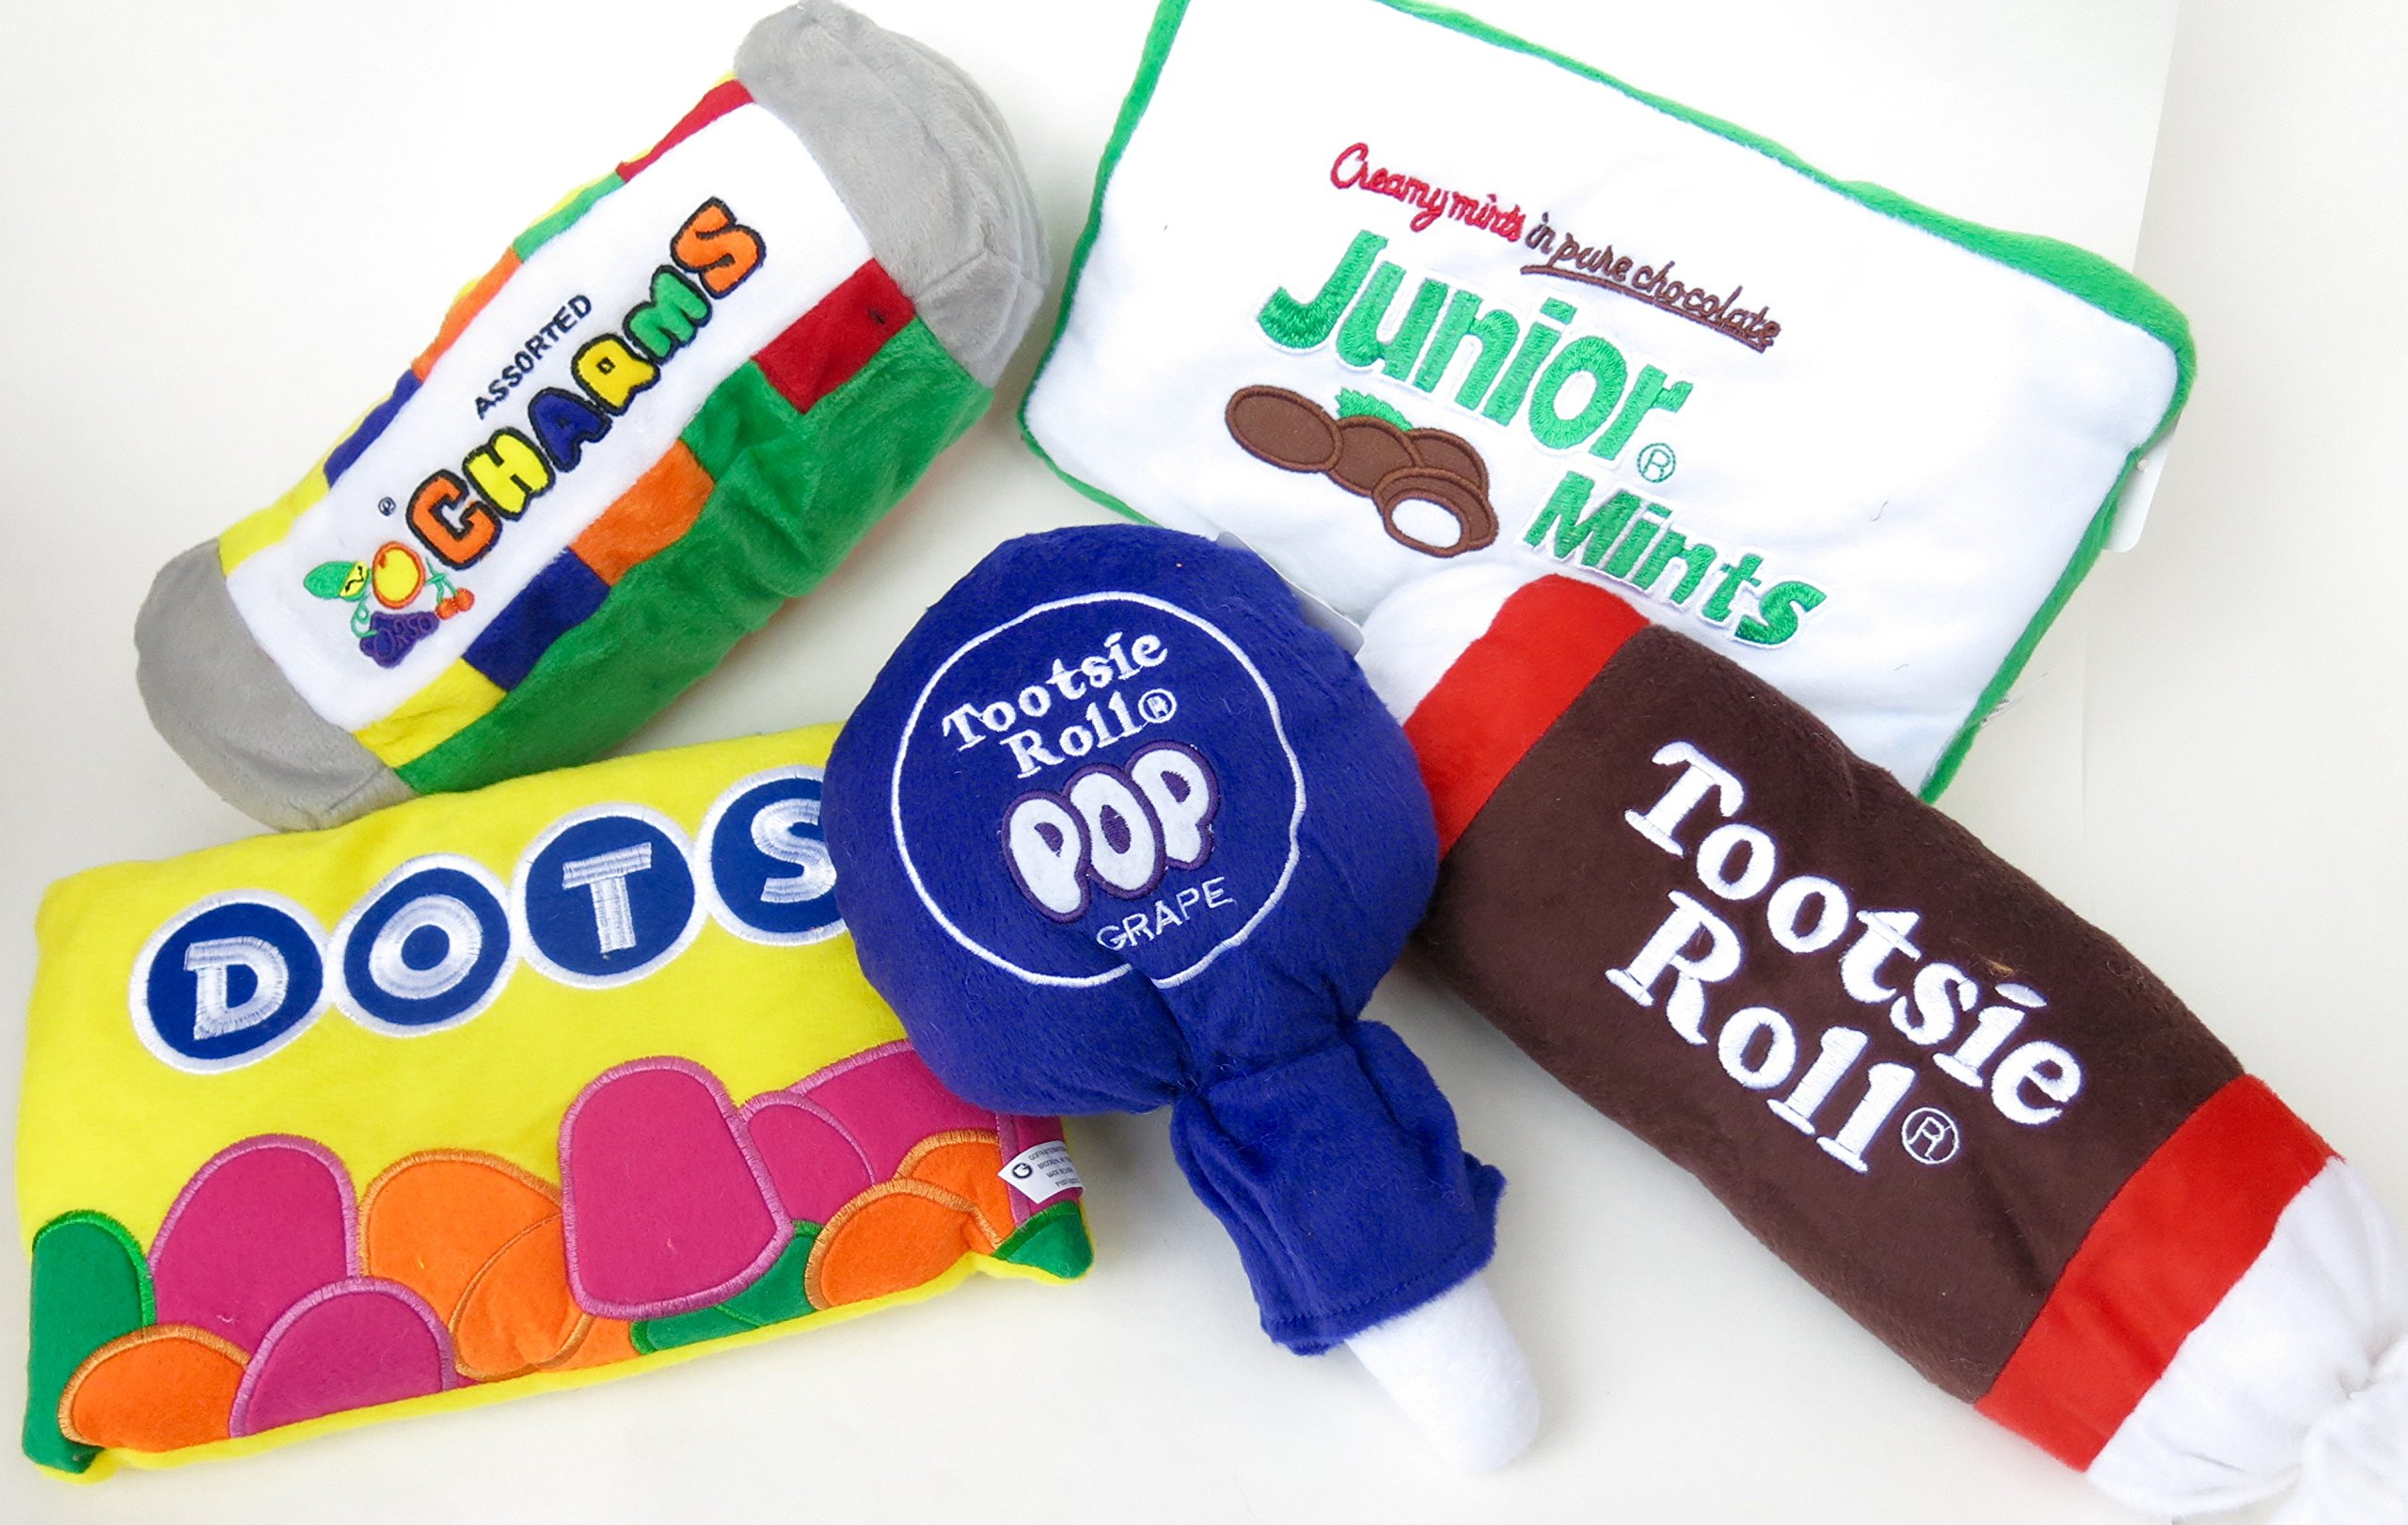 Pillows, Assorted Candy and Sweets Pillows, Tootsie Rolls, Dots, Donuts, Cakes and Ice Cream Cones, Fun Pillows, 5 pieces pillow.